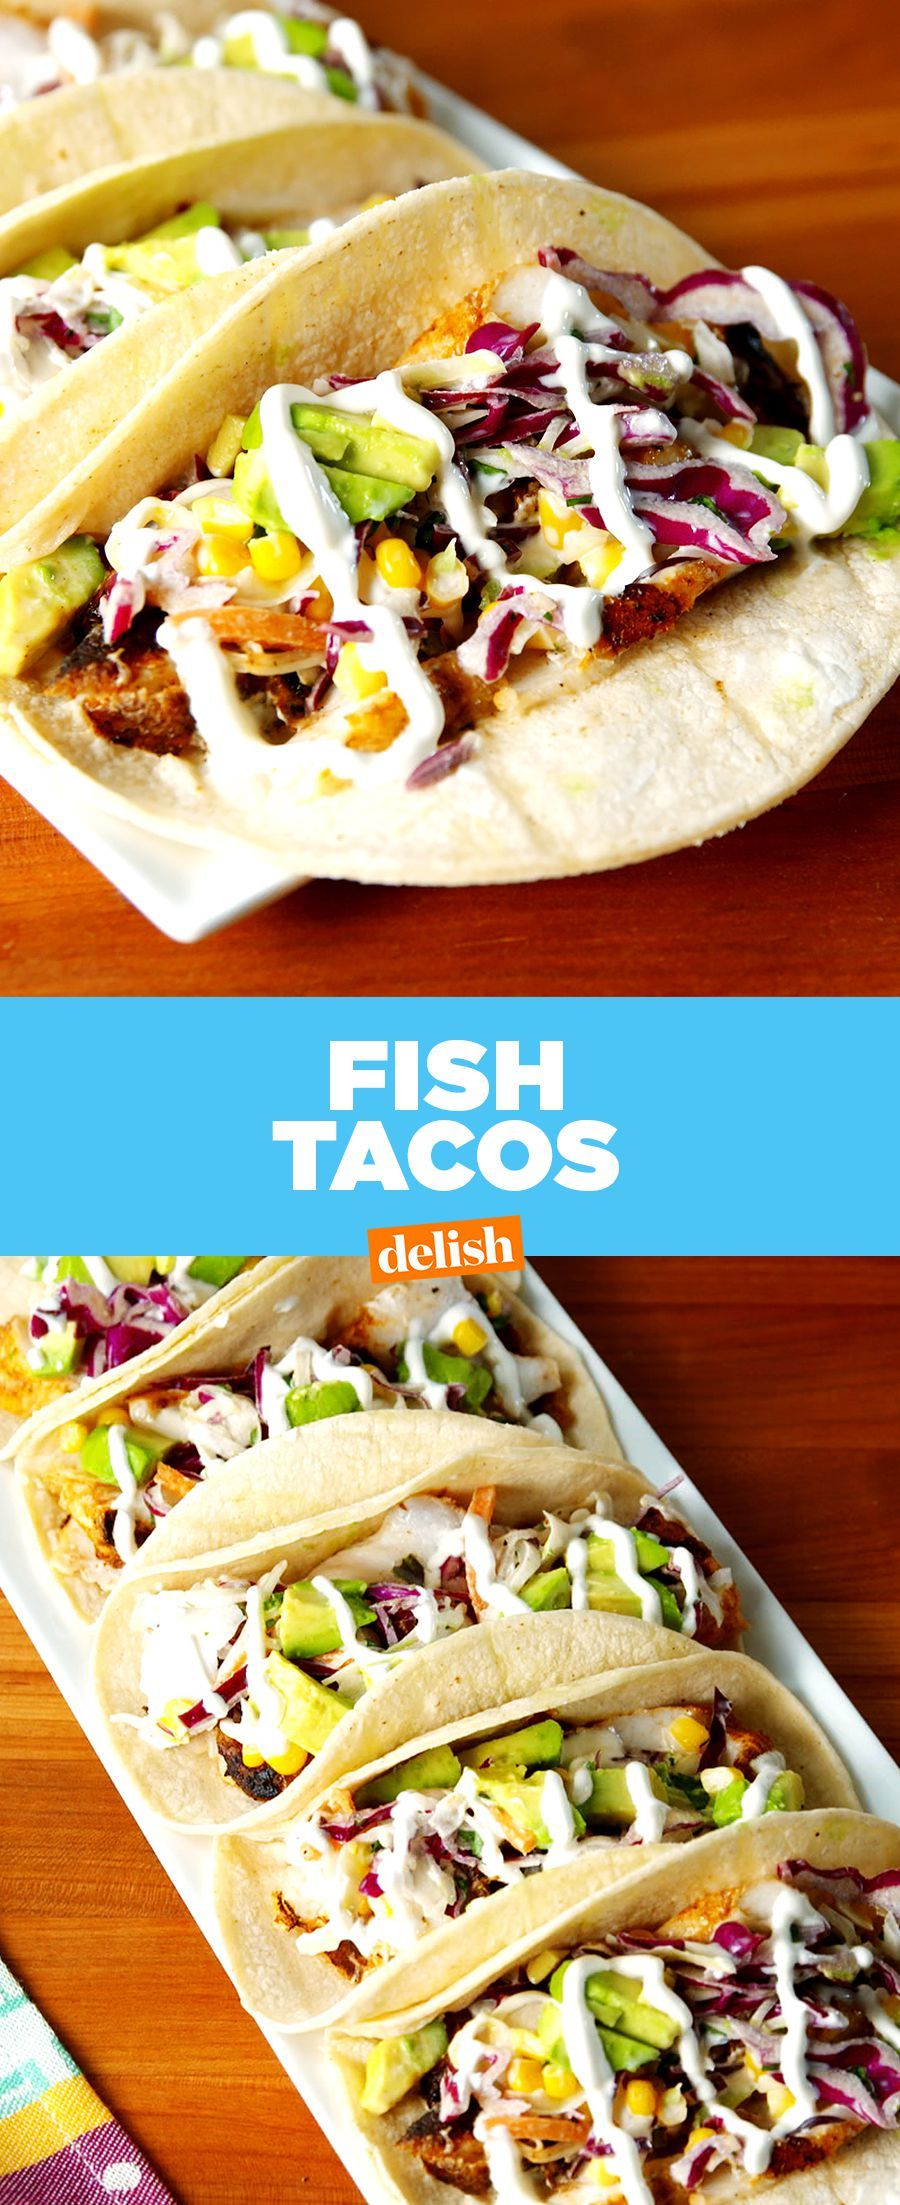 This Is The Only Fish Taco Recipe You'll Ever Need